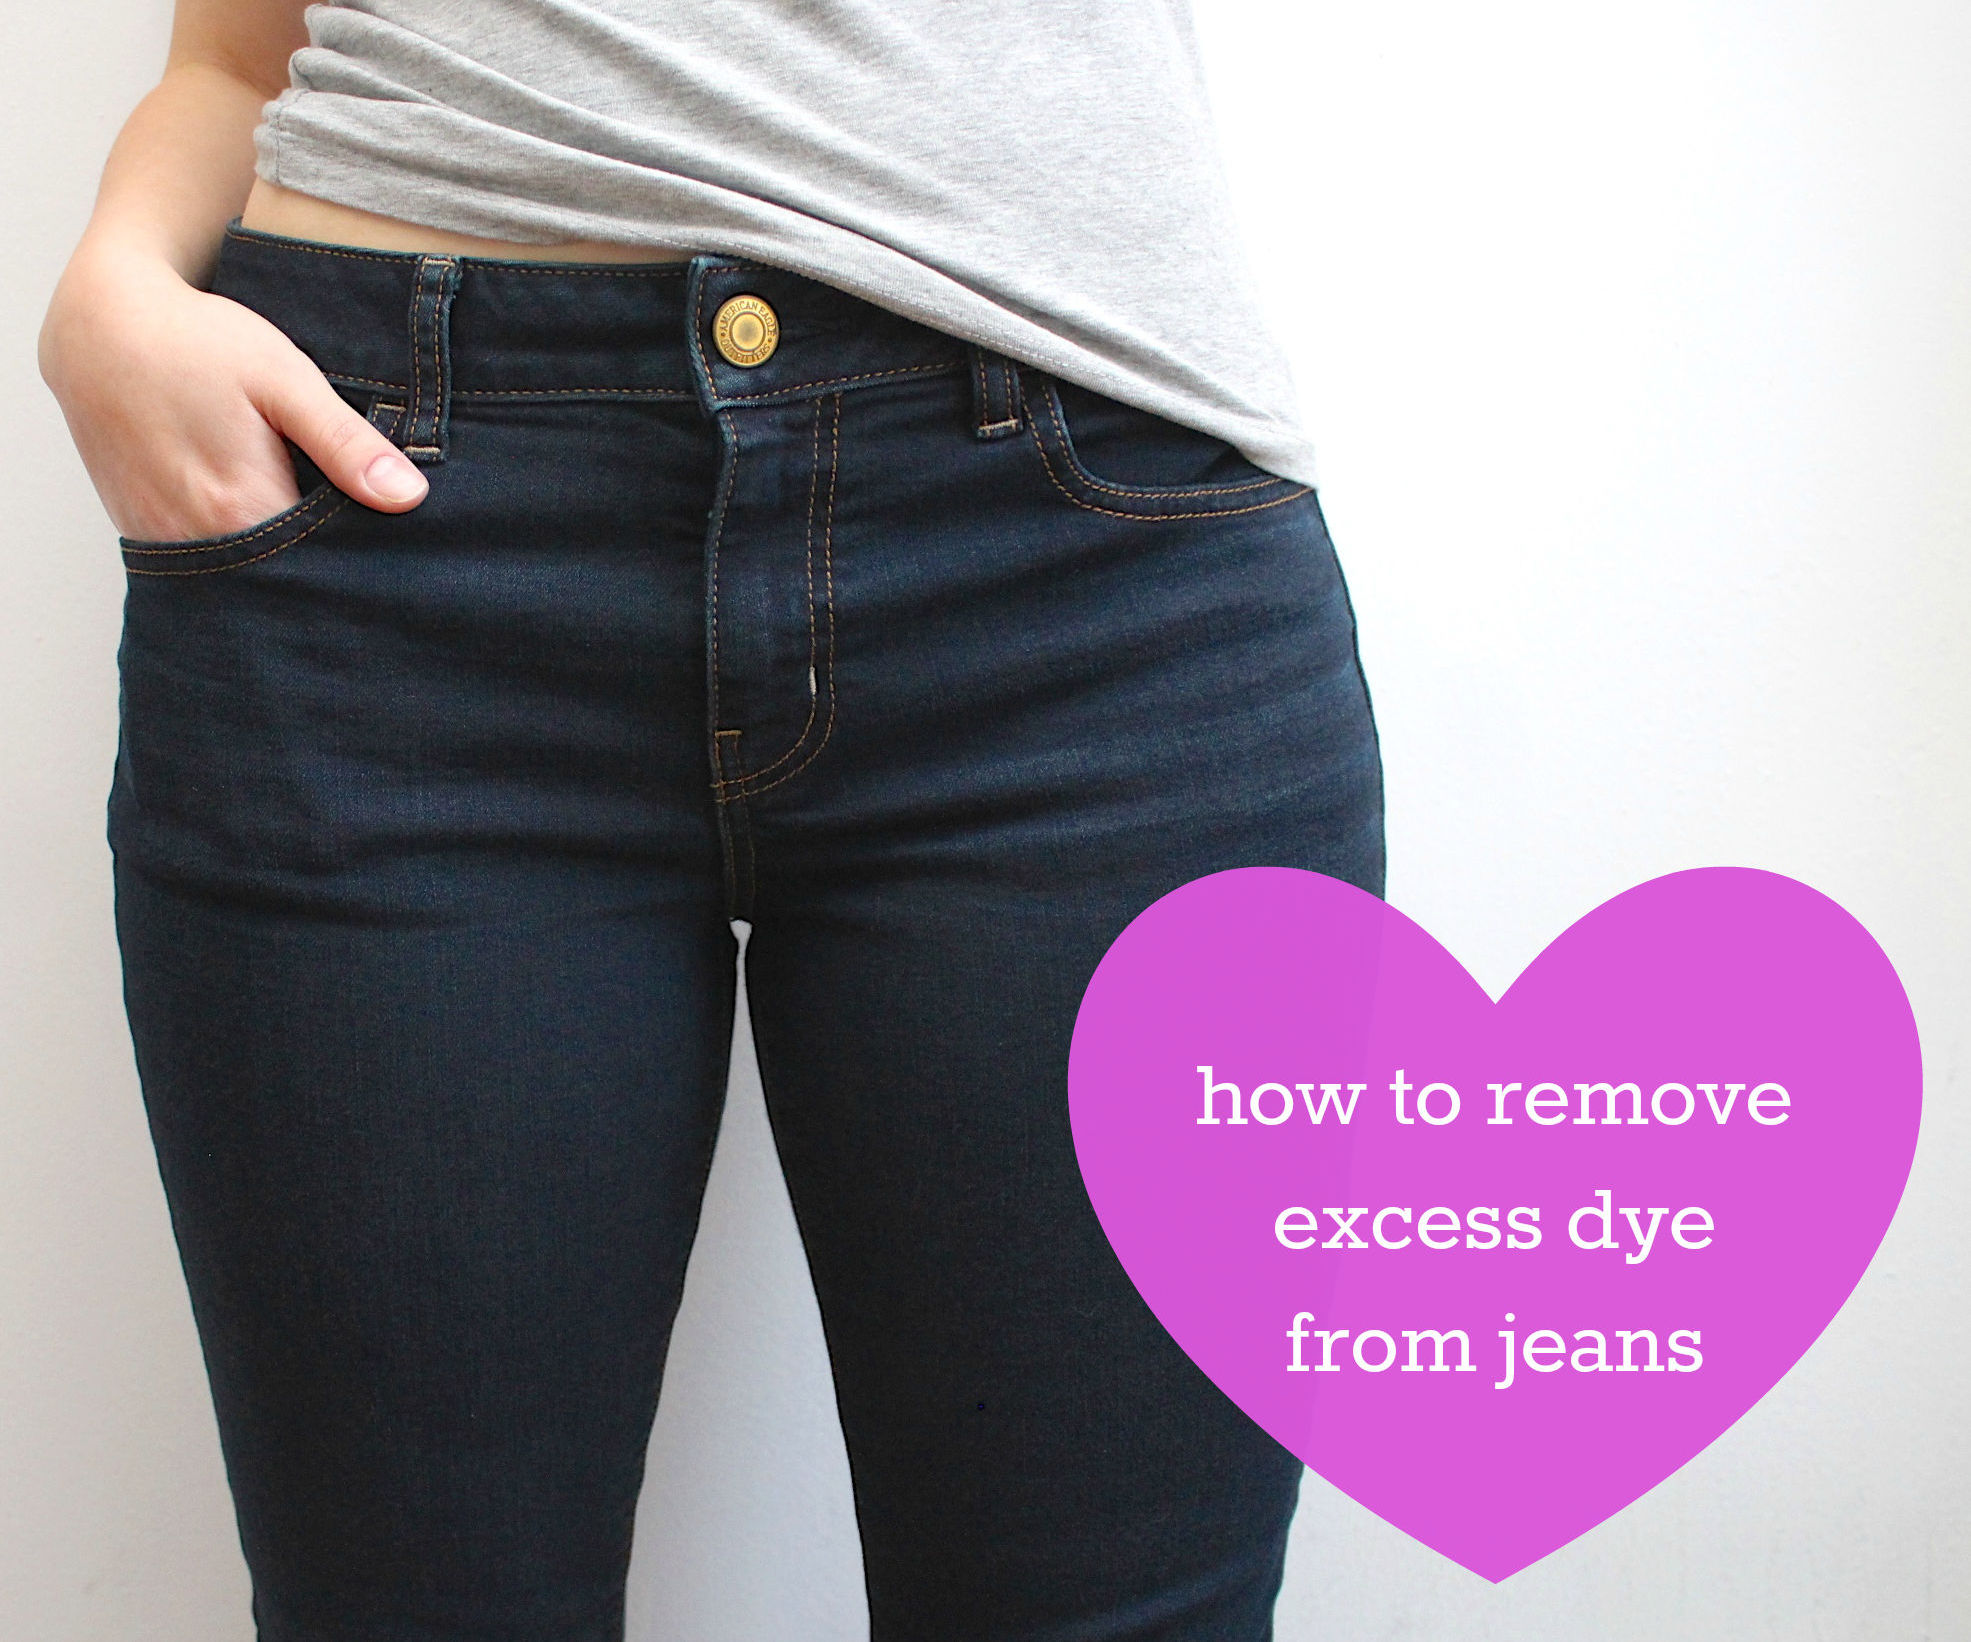 how to remove excess dye from jeans